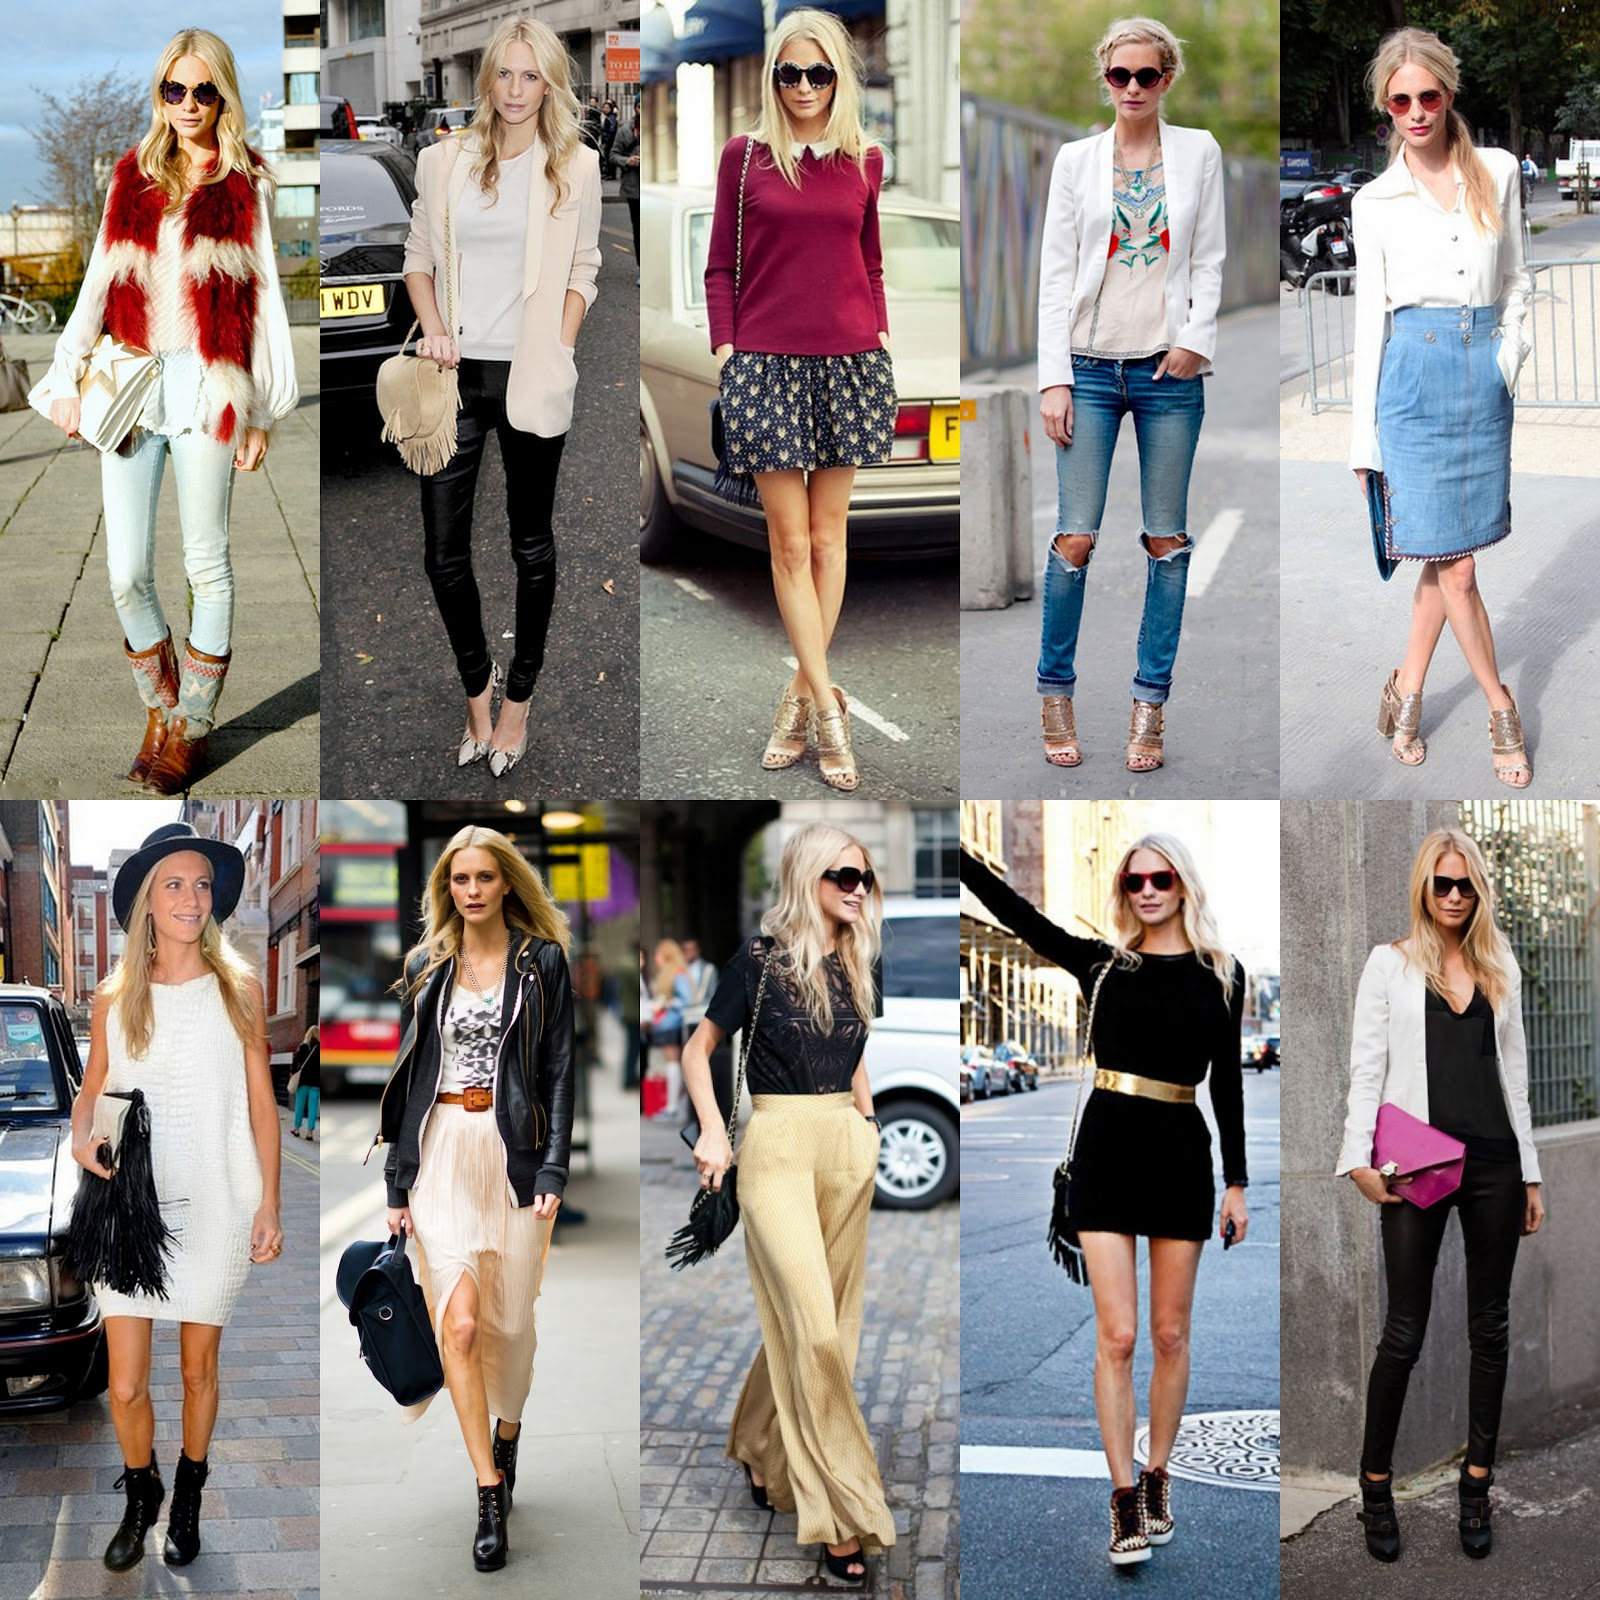 New Style Icons In 2017 - Best New Style Icons